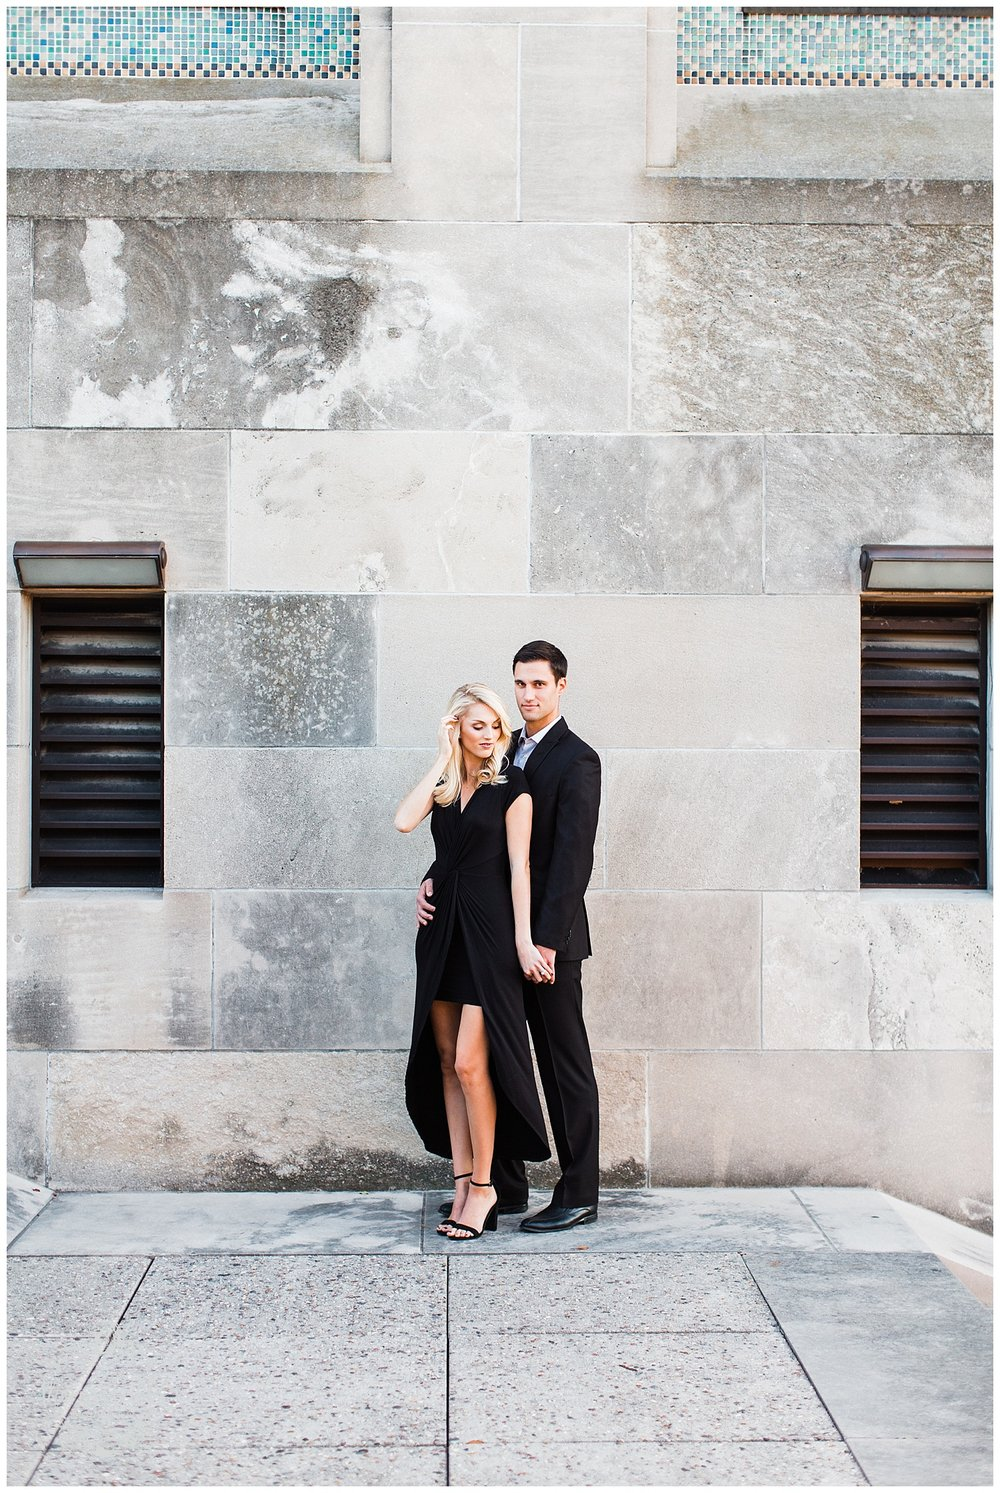 CLOE & GABE LIBERTY MEMORIAL ENGAGEMENT | MARISSA CRIBBS PHOTOGRAPHY | LOOSE PARK ENGAGEMENT_3469.jpg